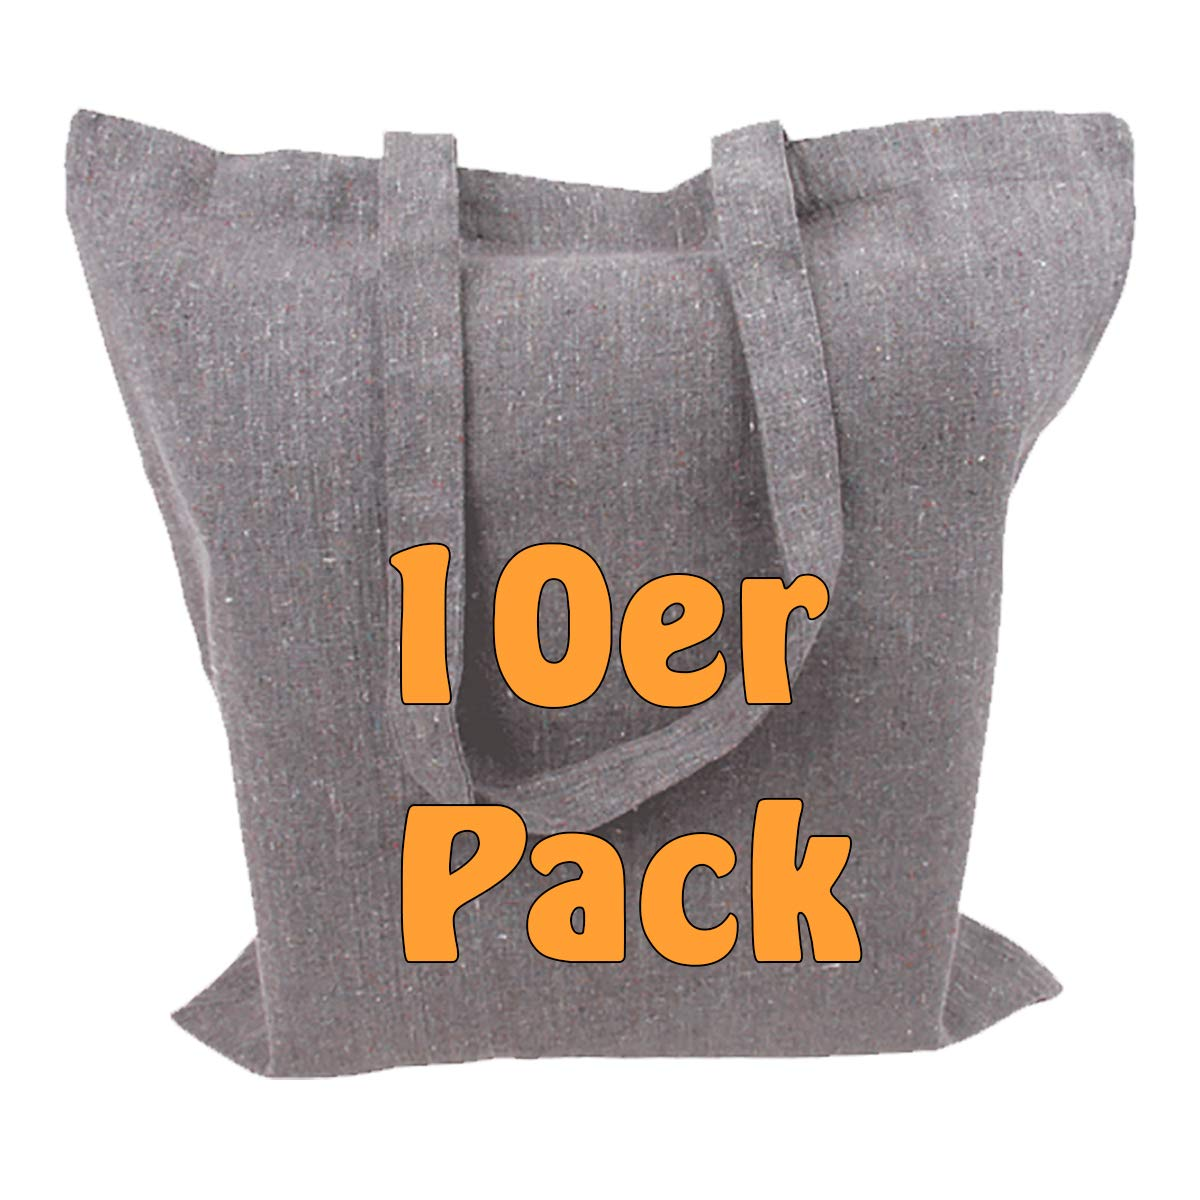 a058102ad1367 100% Recycled Cotton Eco Shopping Bag Robust with Heavy Fabric and Recycled  Bag Long Handles Grey Marl 38 Pack of 10 Gift Tote Bag